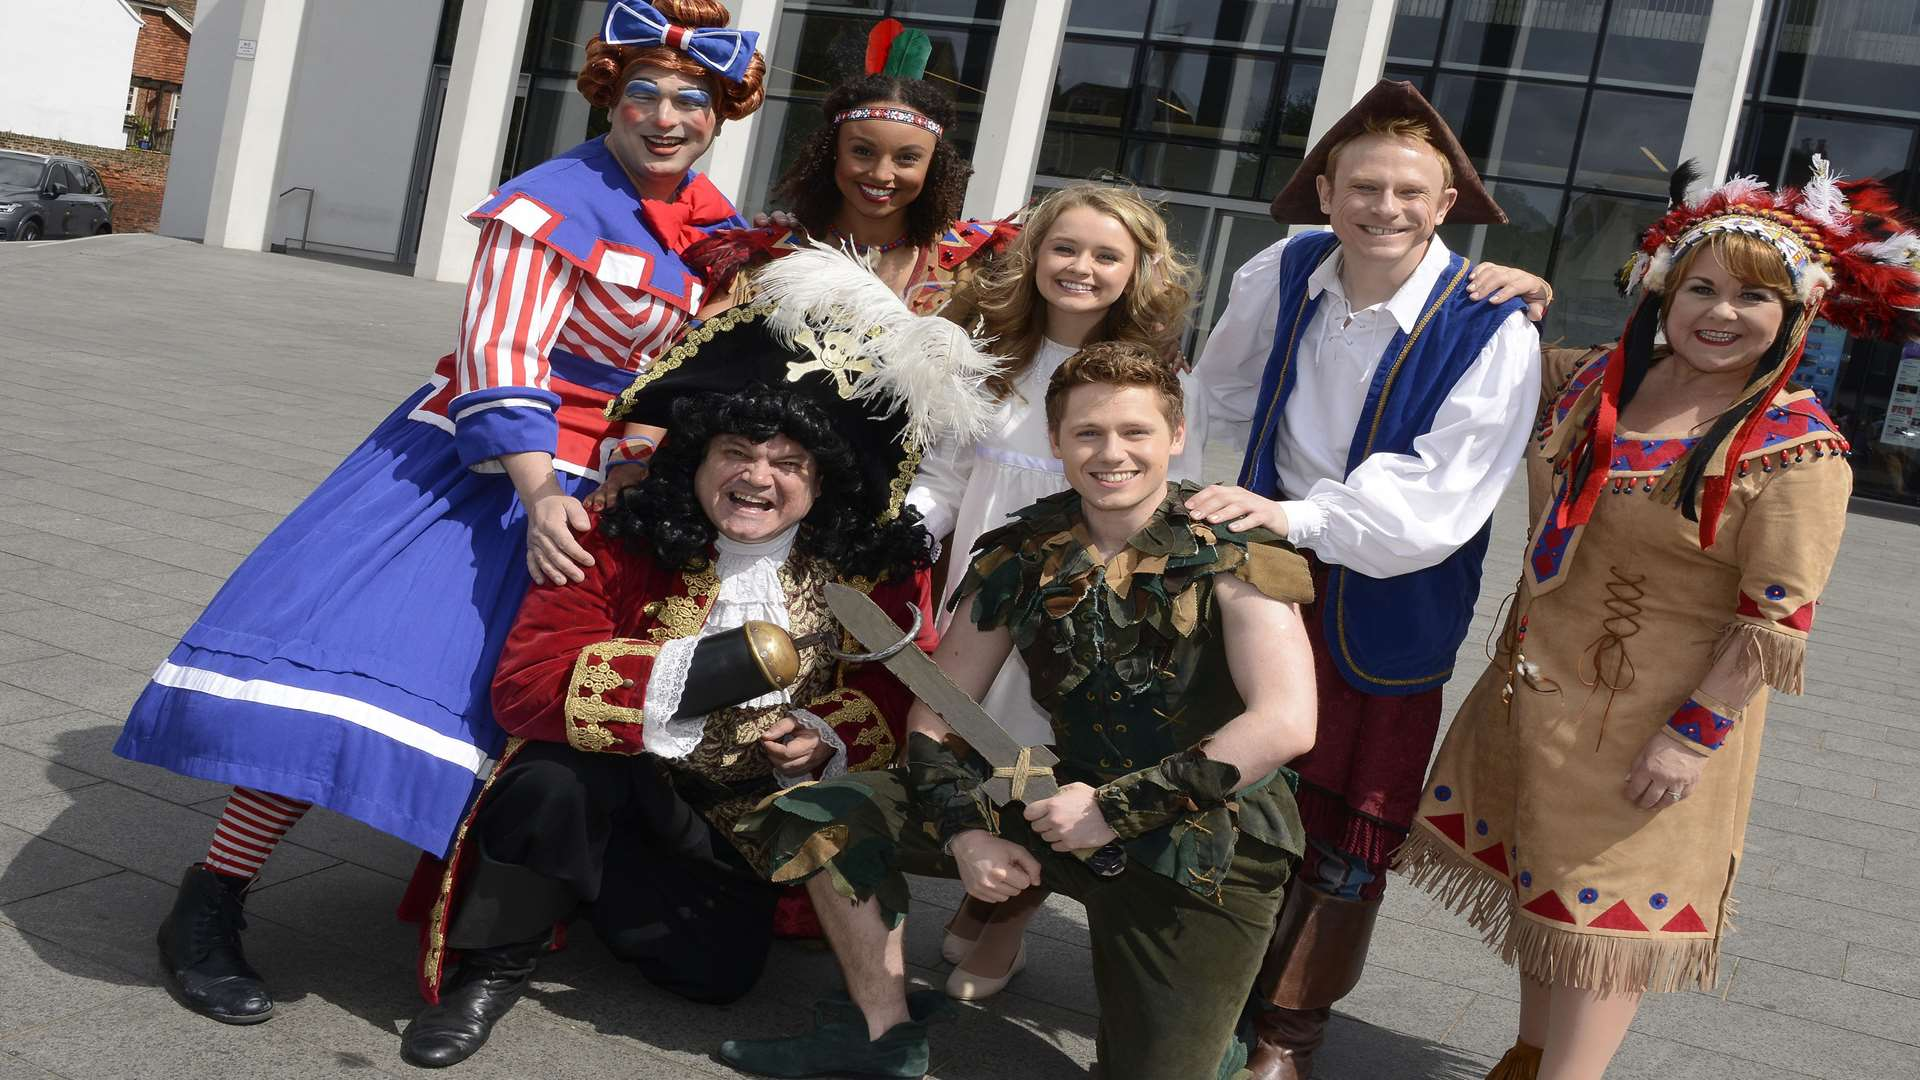 The cast of Peter Pan at The Marlowe Theatre